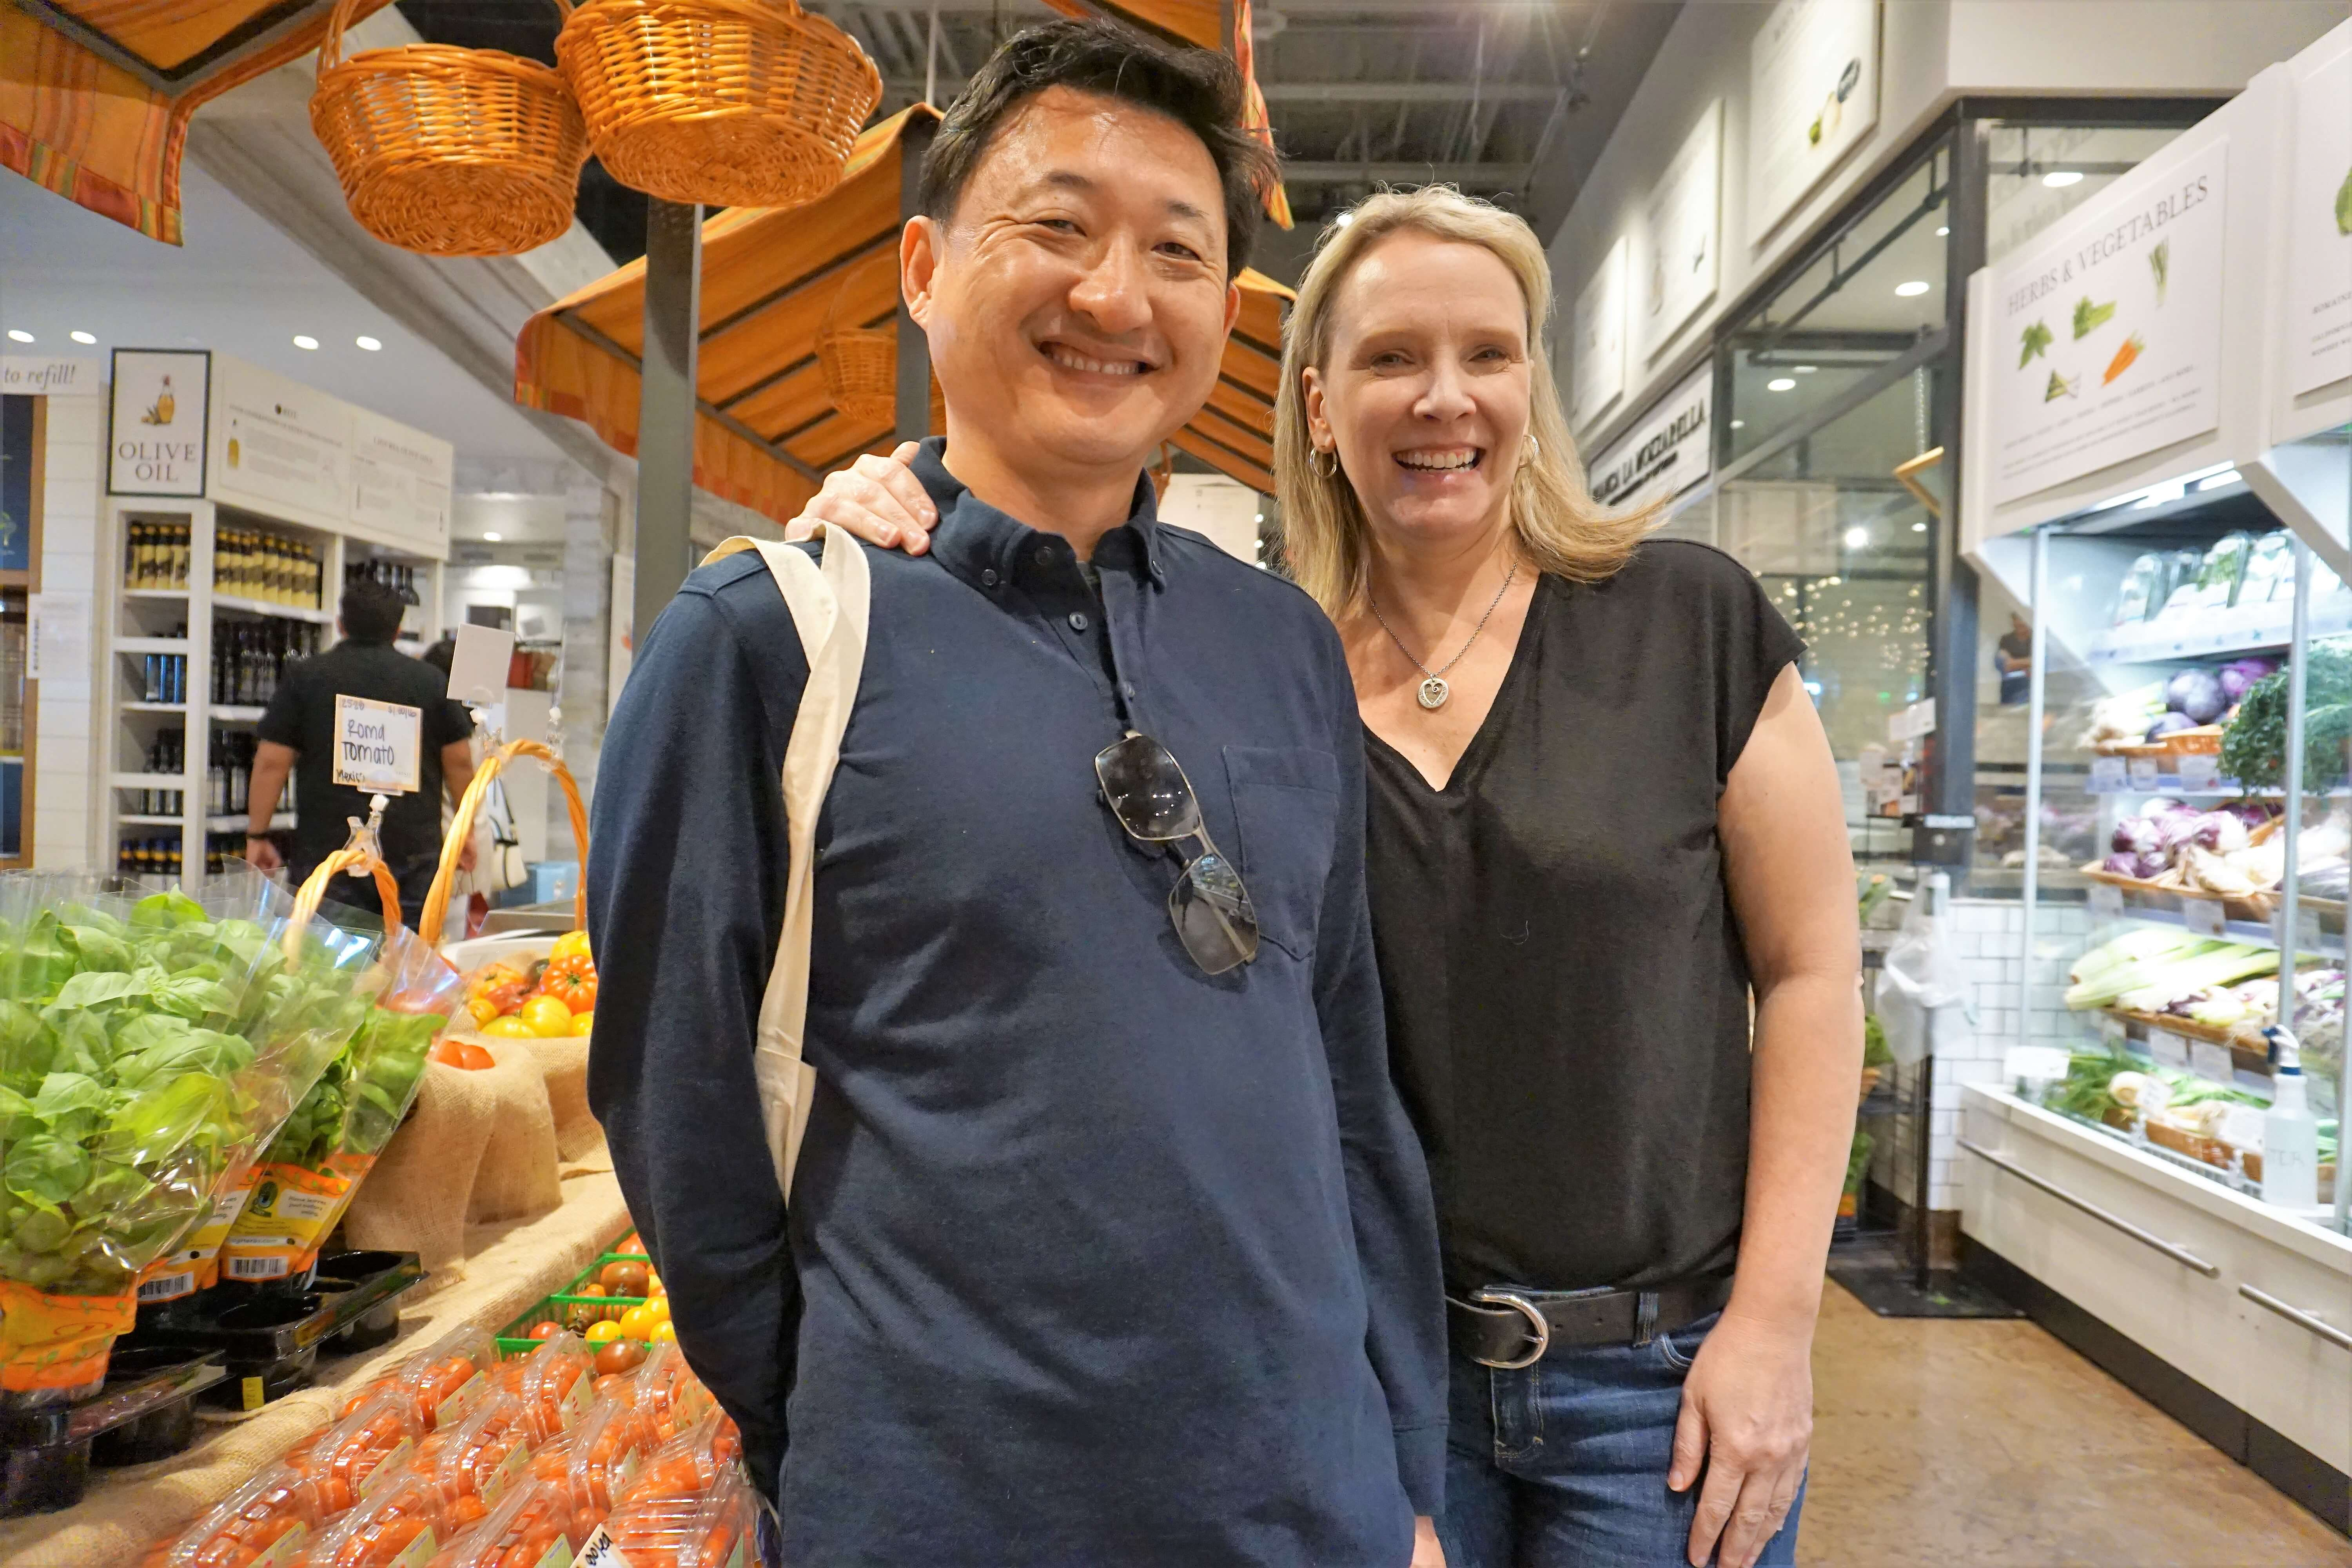 Jason and Wendy enjoying one of the Eataly tours at Eataly Los Angeles